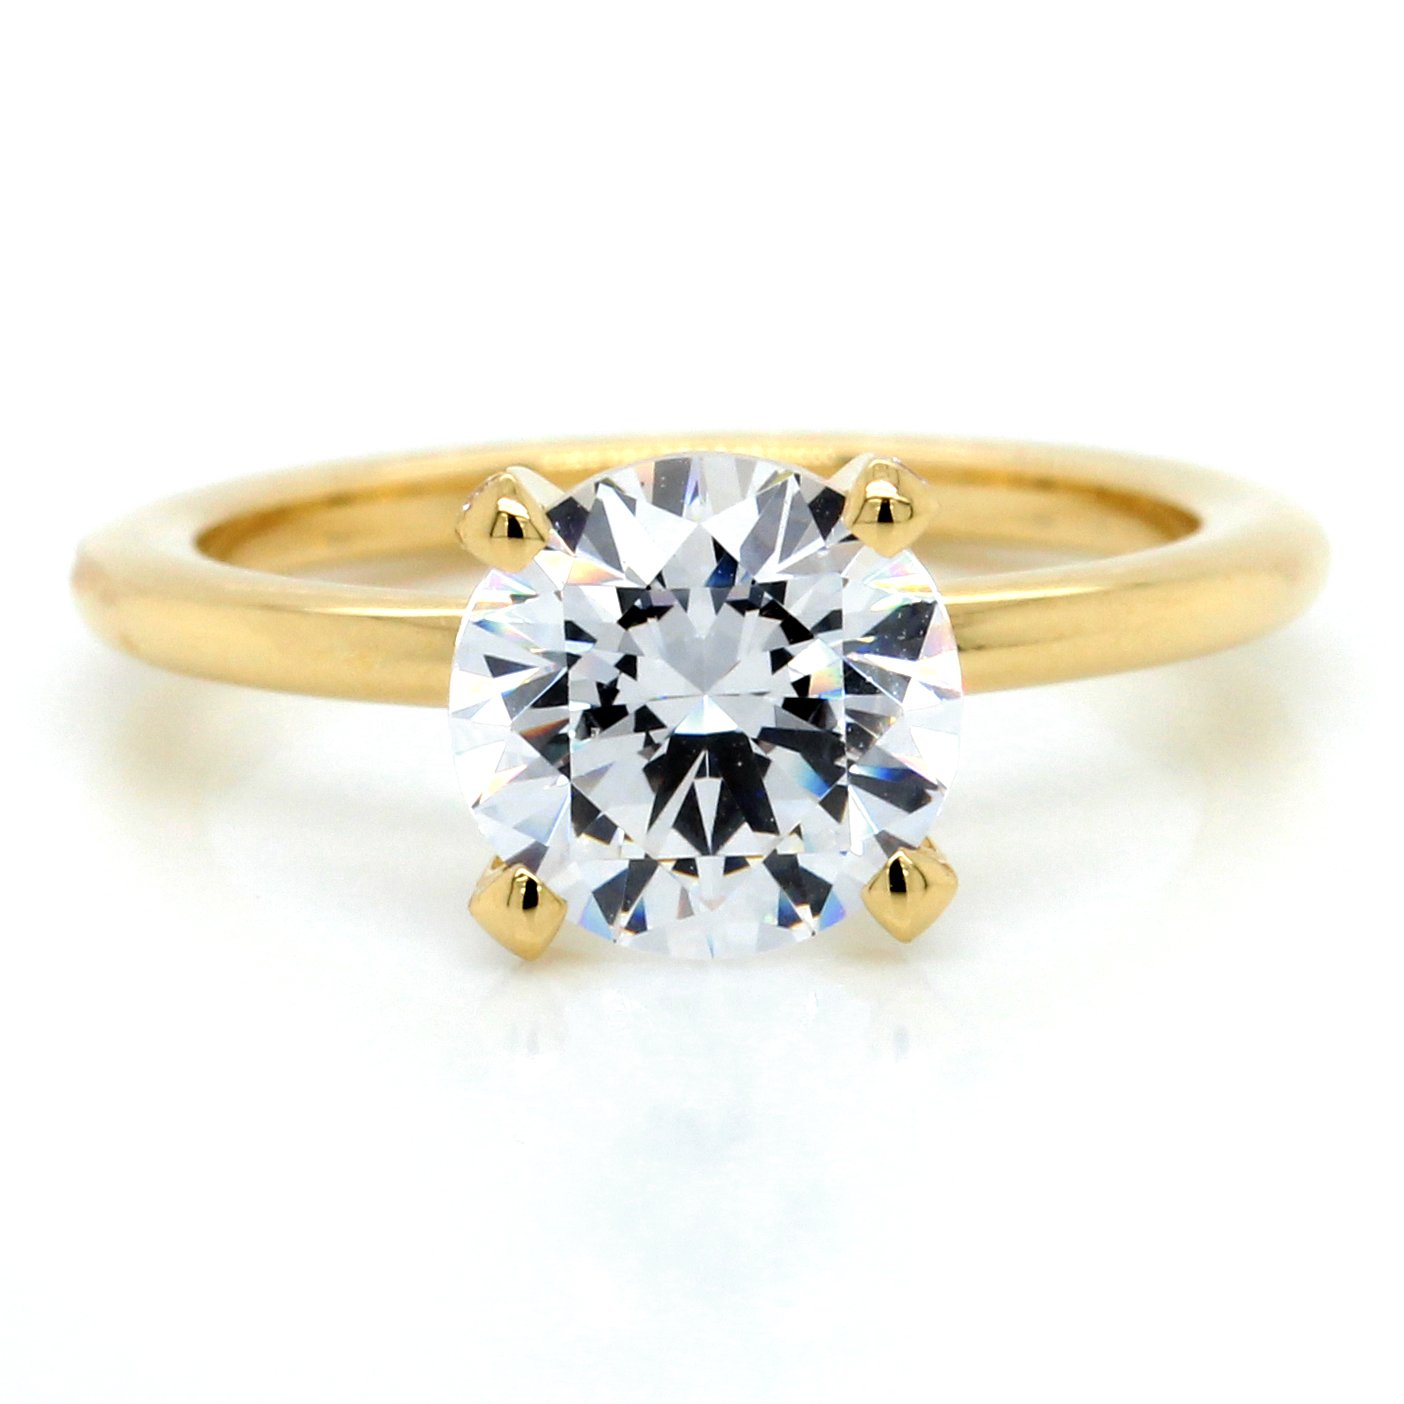 18K Yellow Gold Four-Prong Engagement Ring